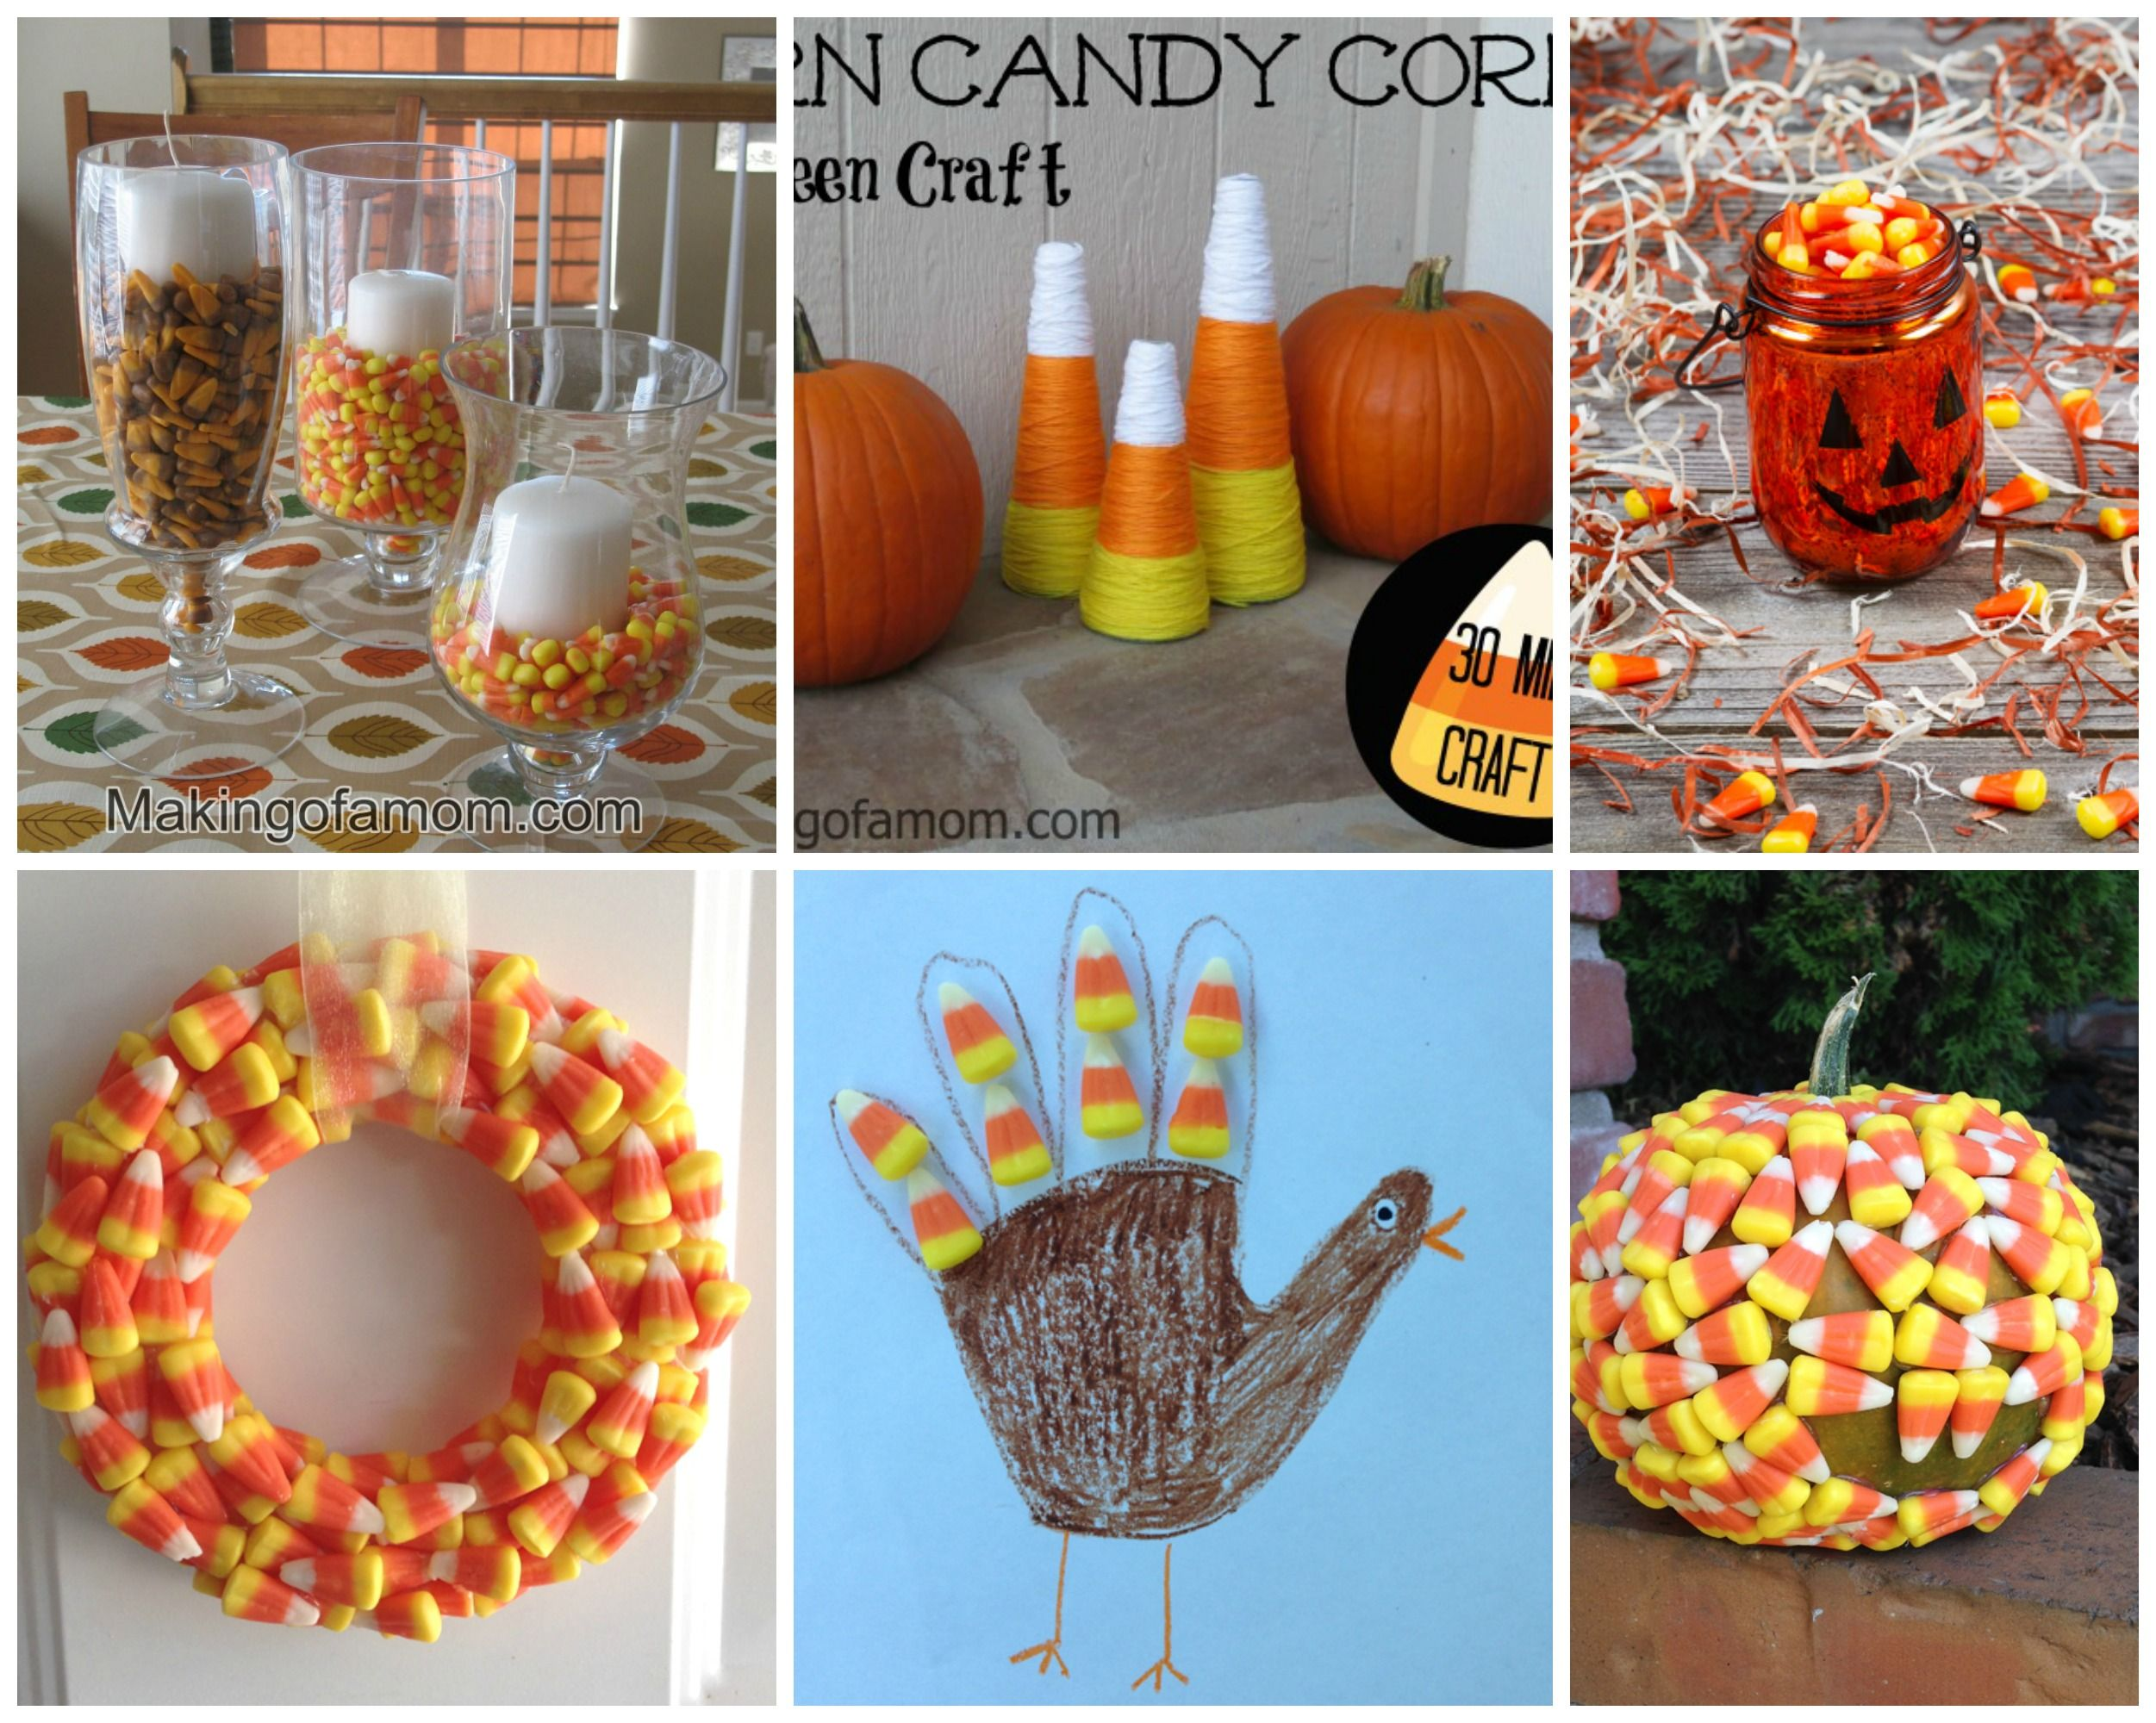 candy corn decorating ideas - Candy Corn Halloween Decorations